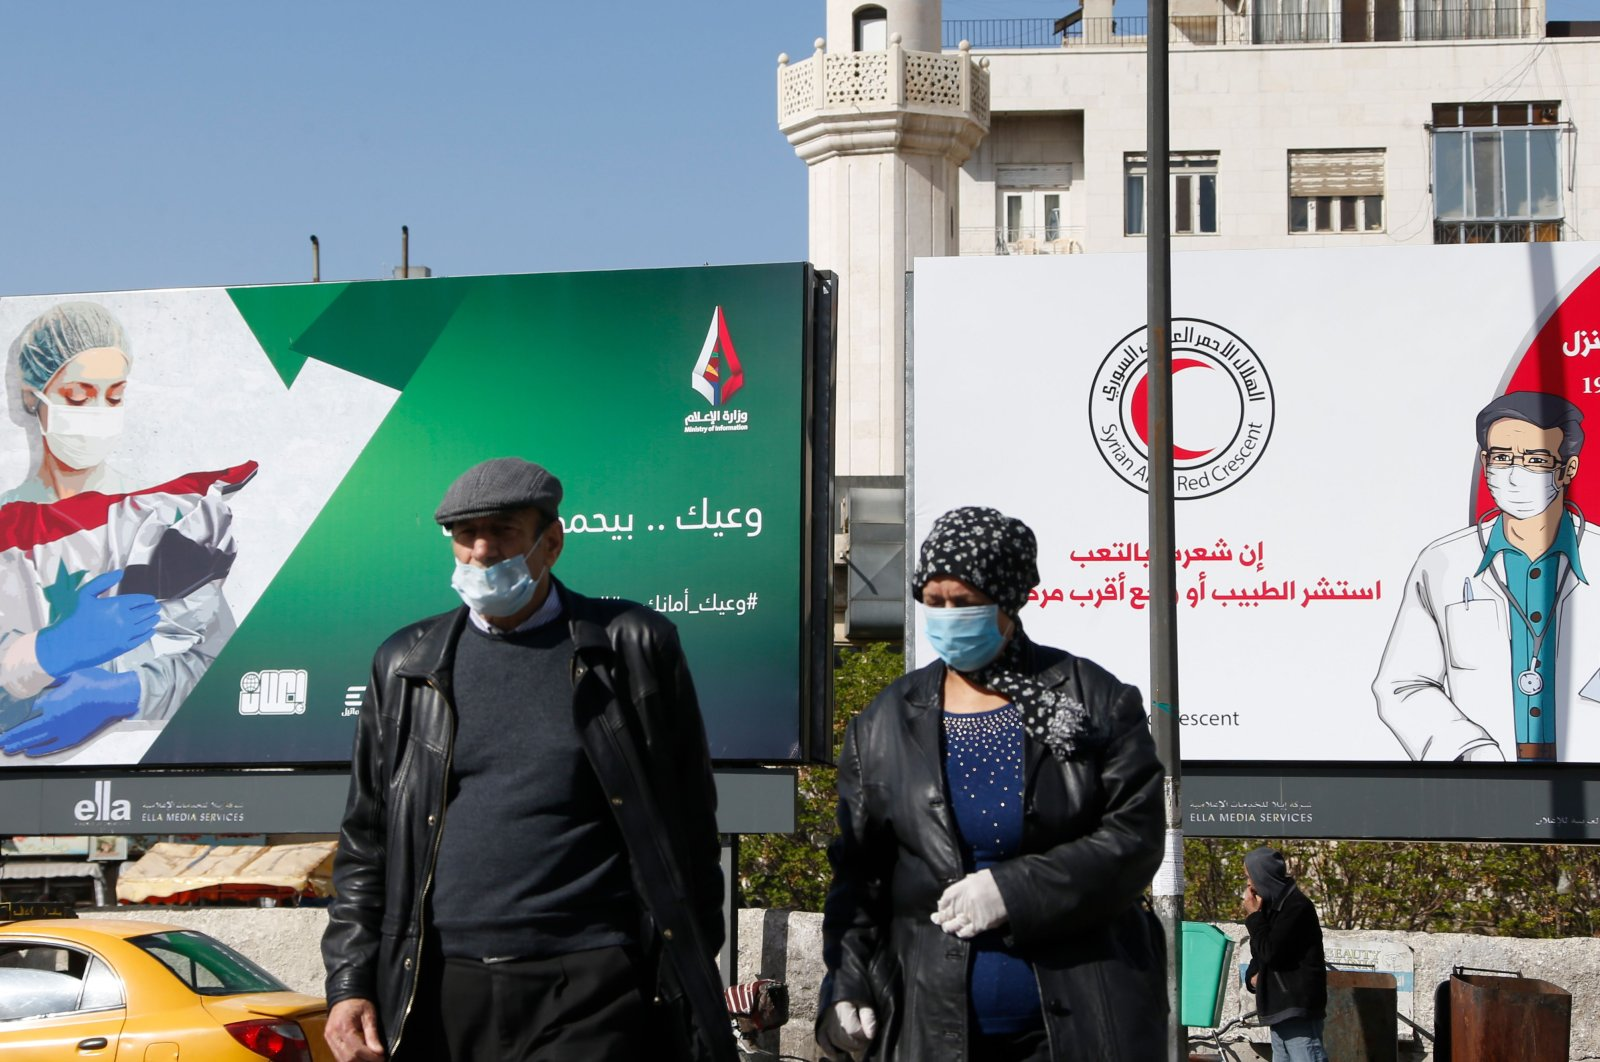 Syrians wearing face masks walk in front of posters informing about the coronavirus, in the capital Damascus, Wednesday, April 1, 2020. (AFP)